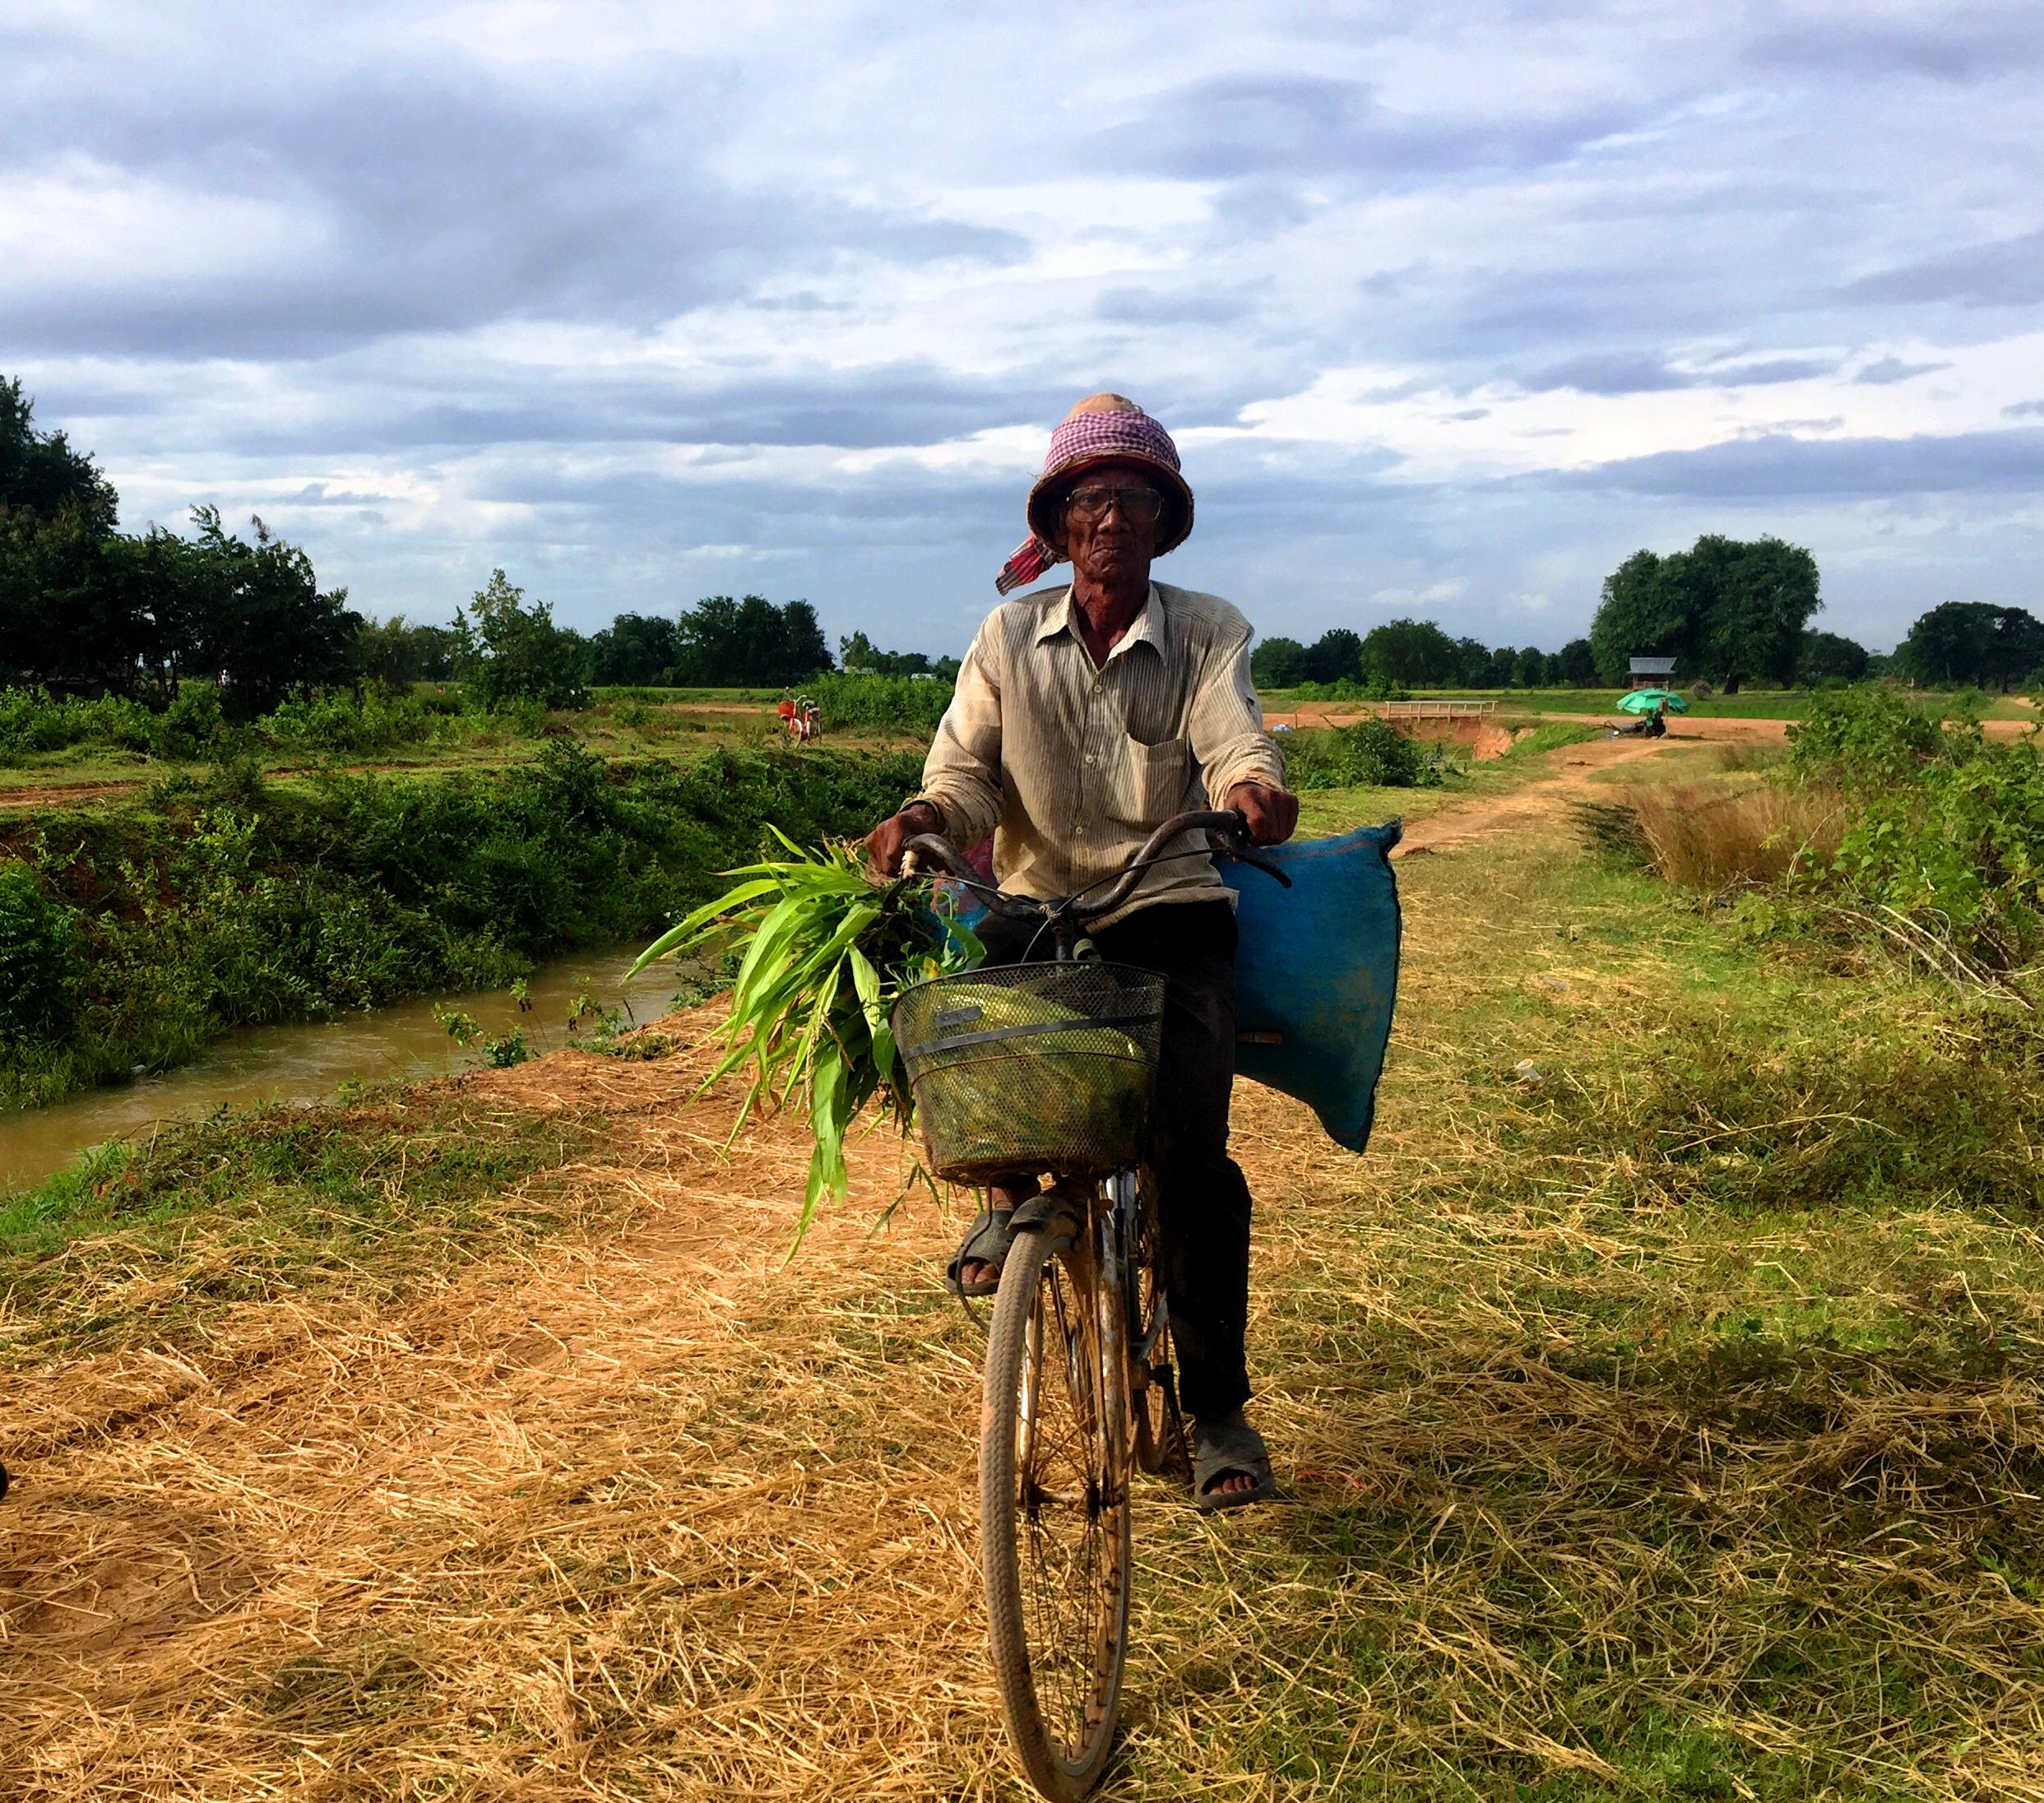 Farmer Riding Bicycle